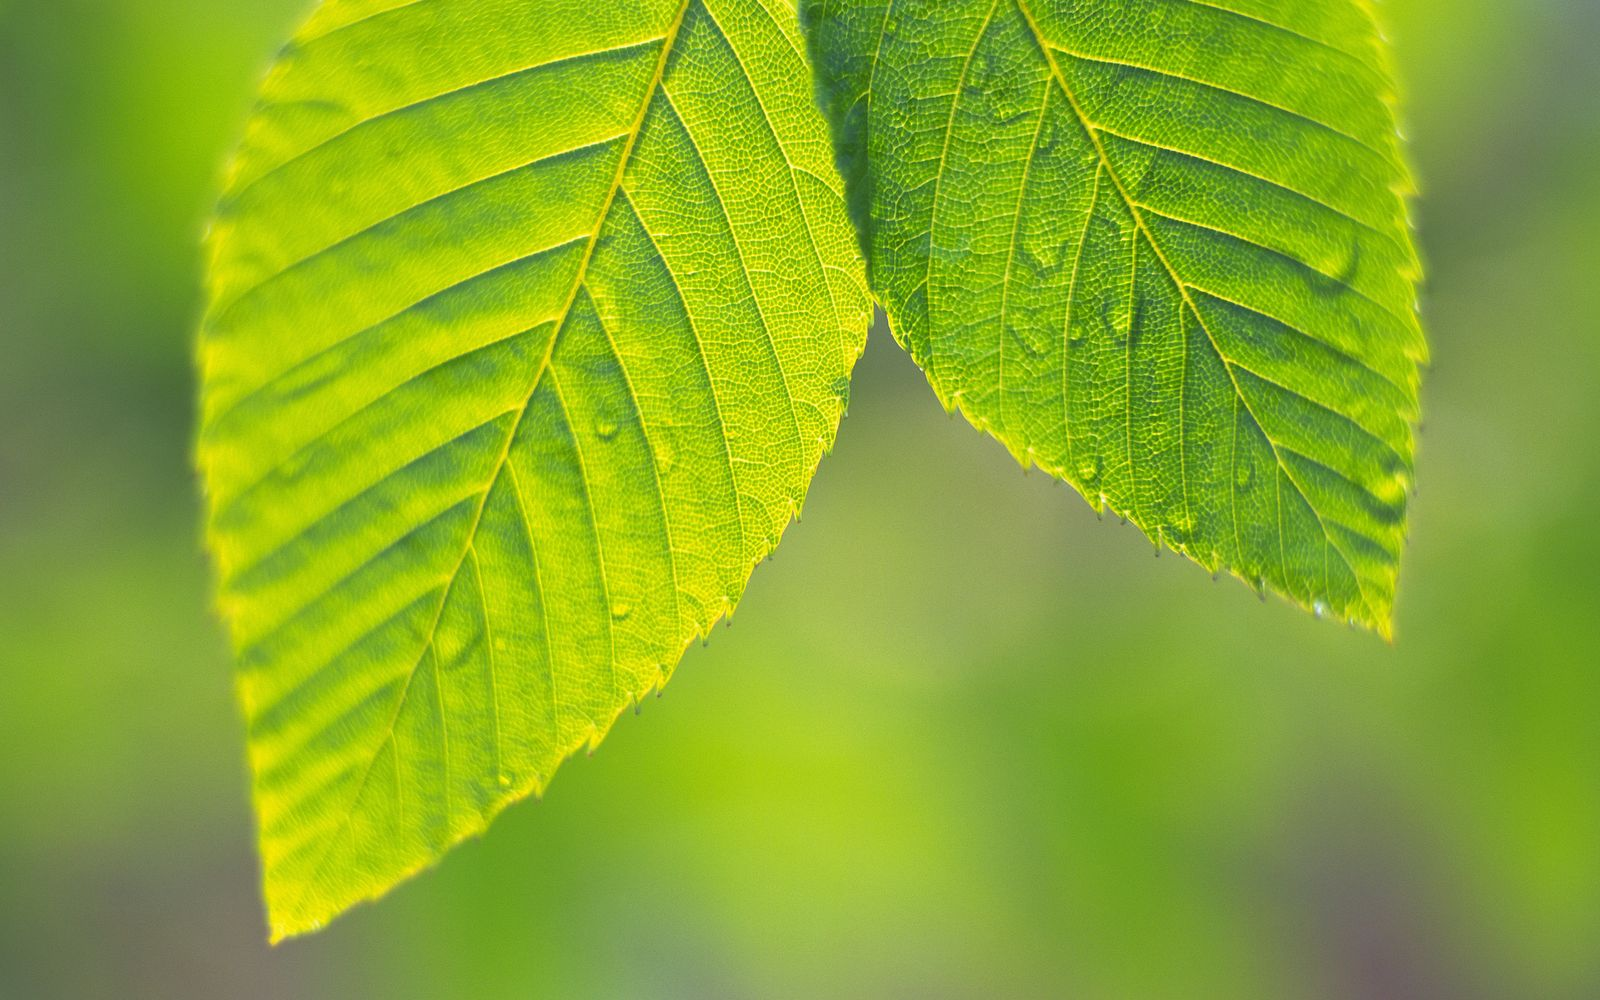 Background Wallpaper Quotes Green Leaves And Green Backgrounds